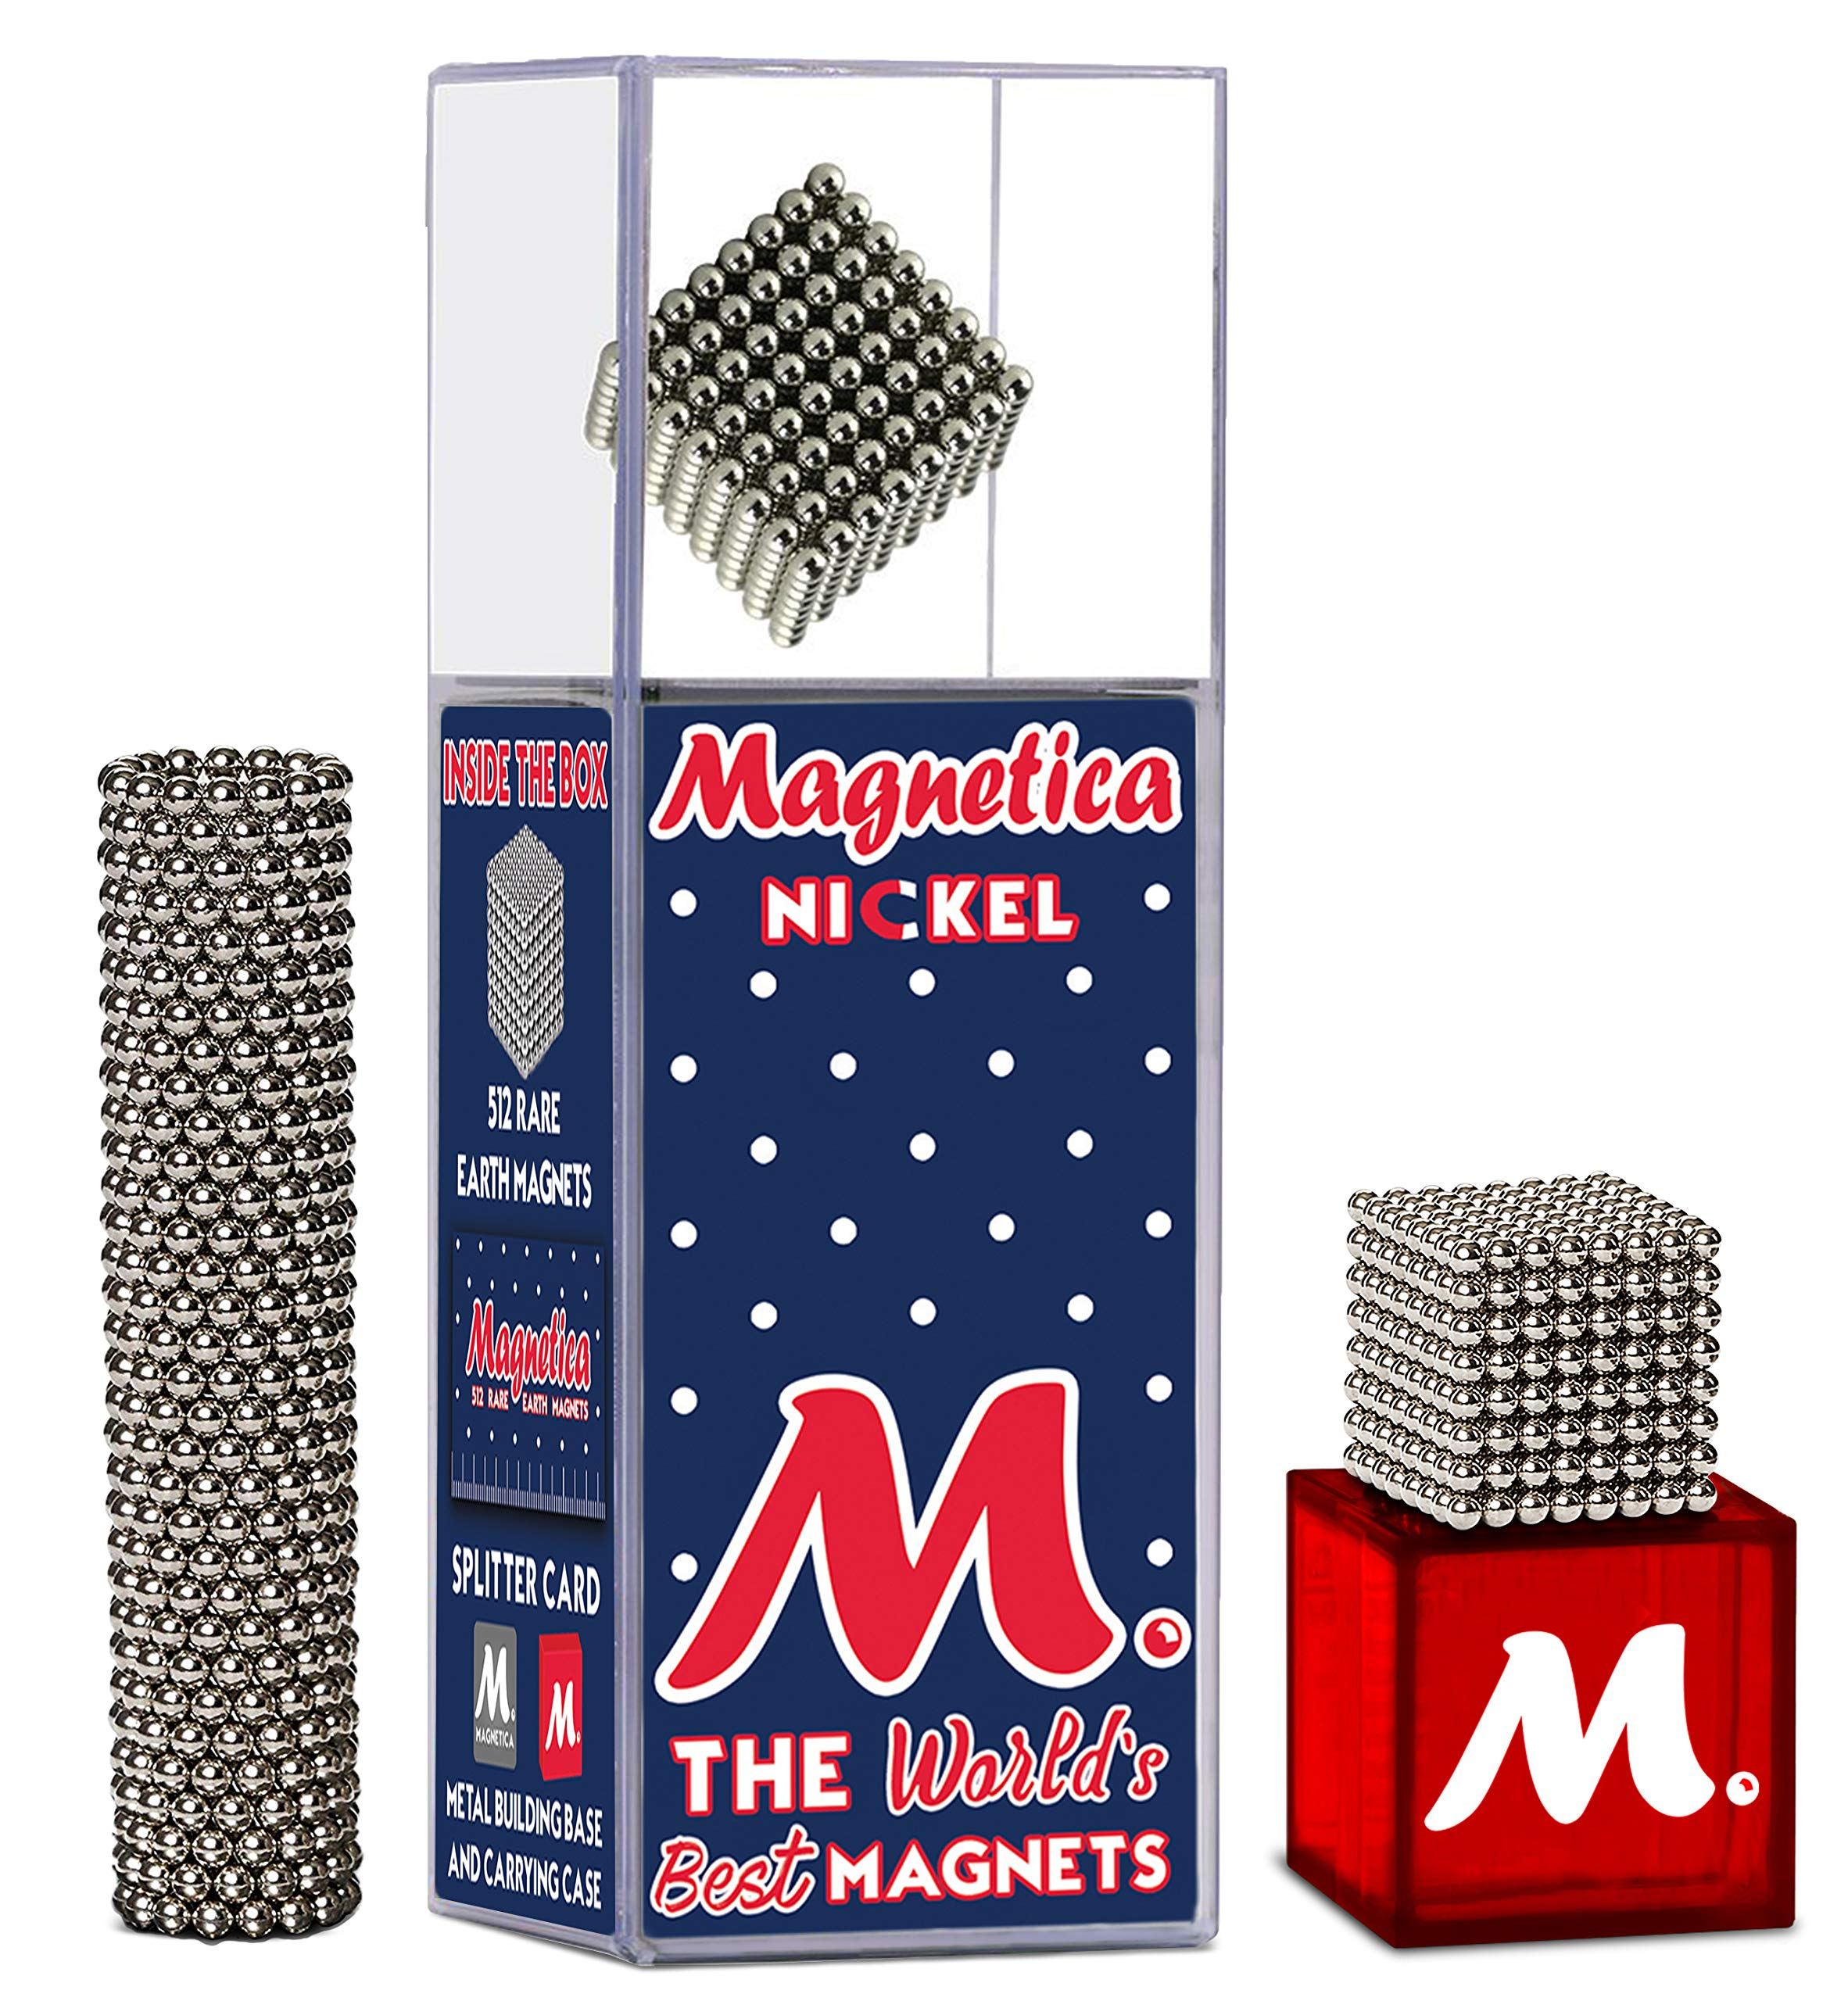 Magnetica Original Buildable Magnets (2.5mm) 512 Set for Sculpture Stress Relief Intelligence Development and Desk Toy for Adults | The World's Best Magnets! by Magnetica